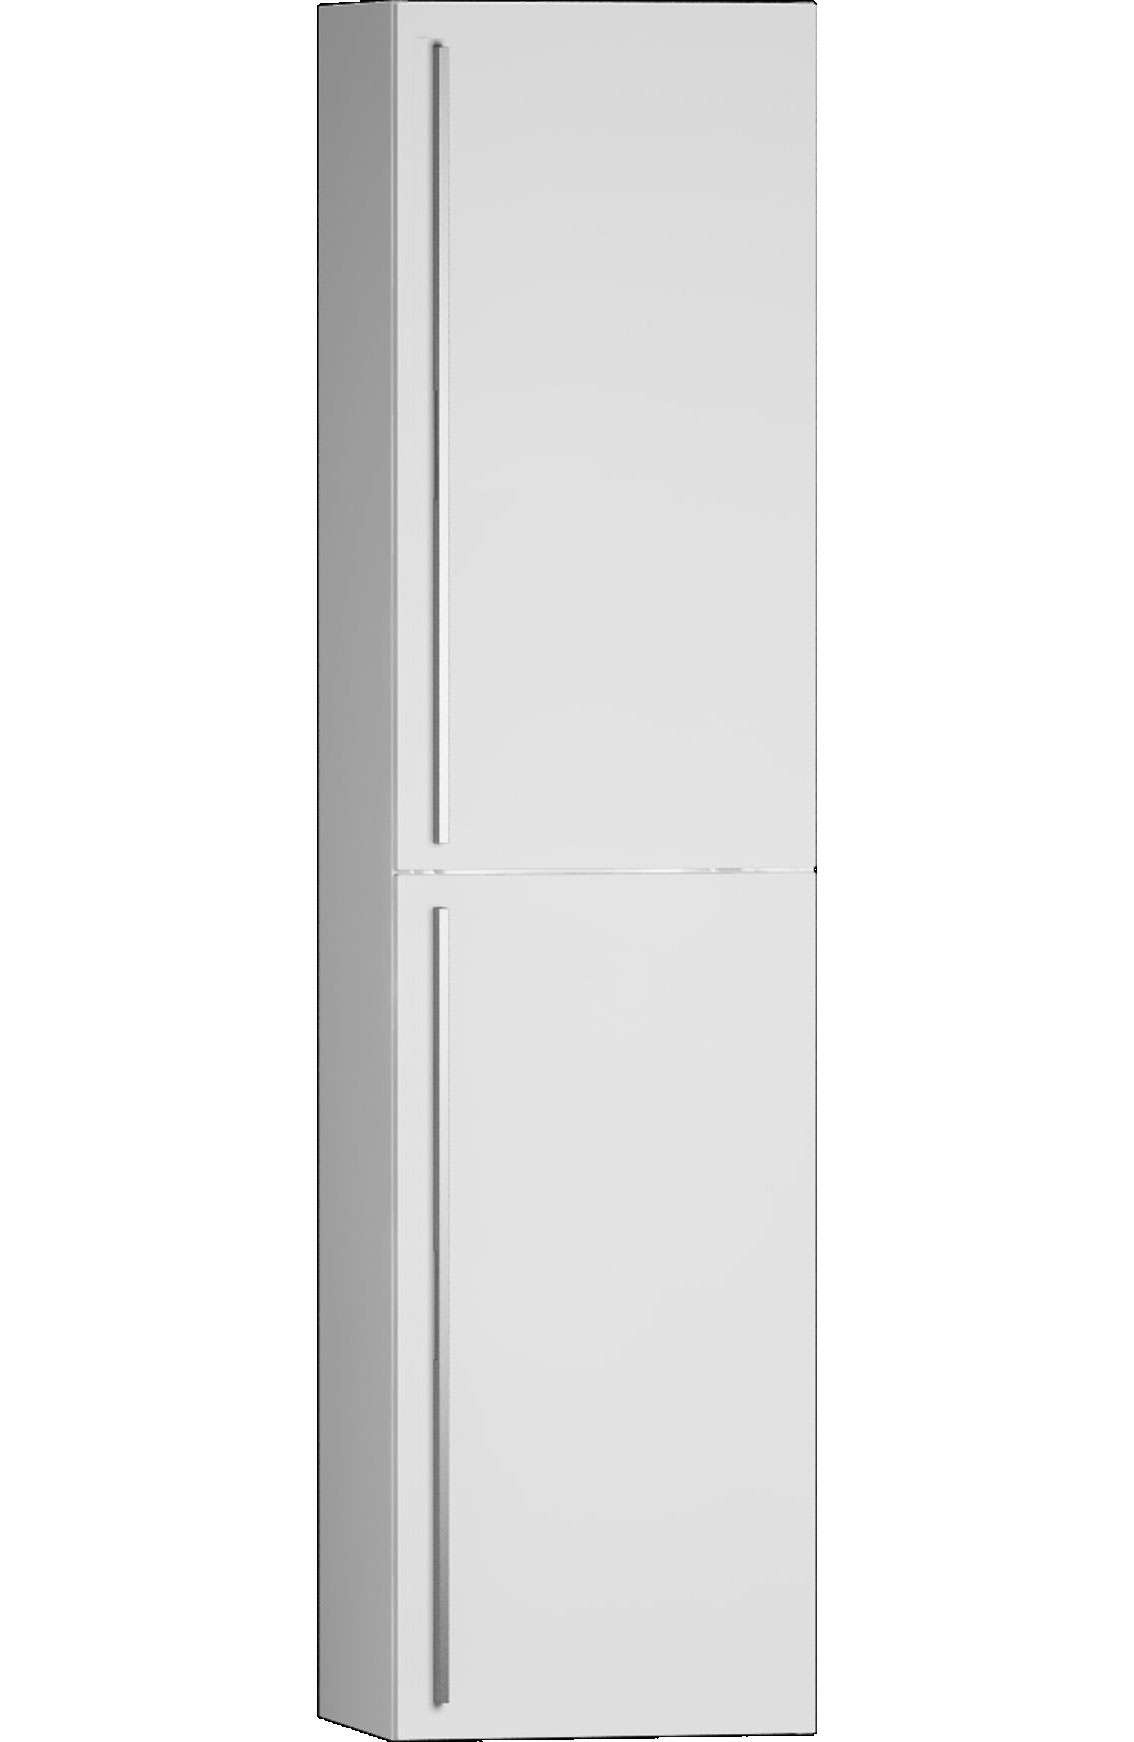 click on Tall Unit with 2 Doors image to enlarge